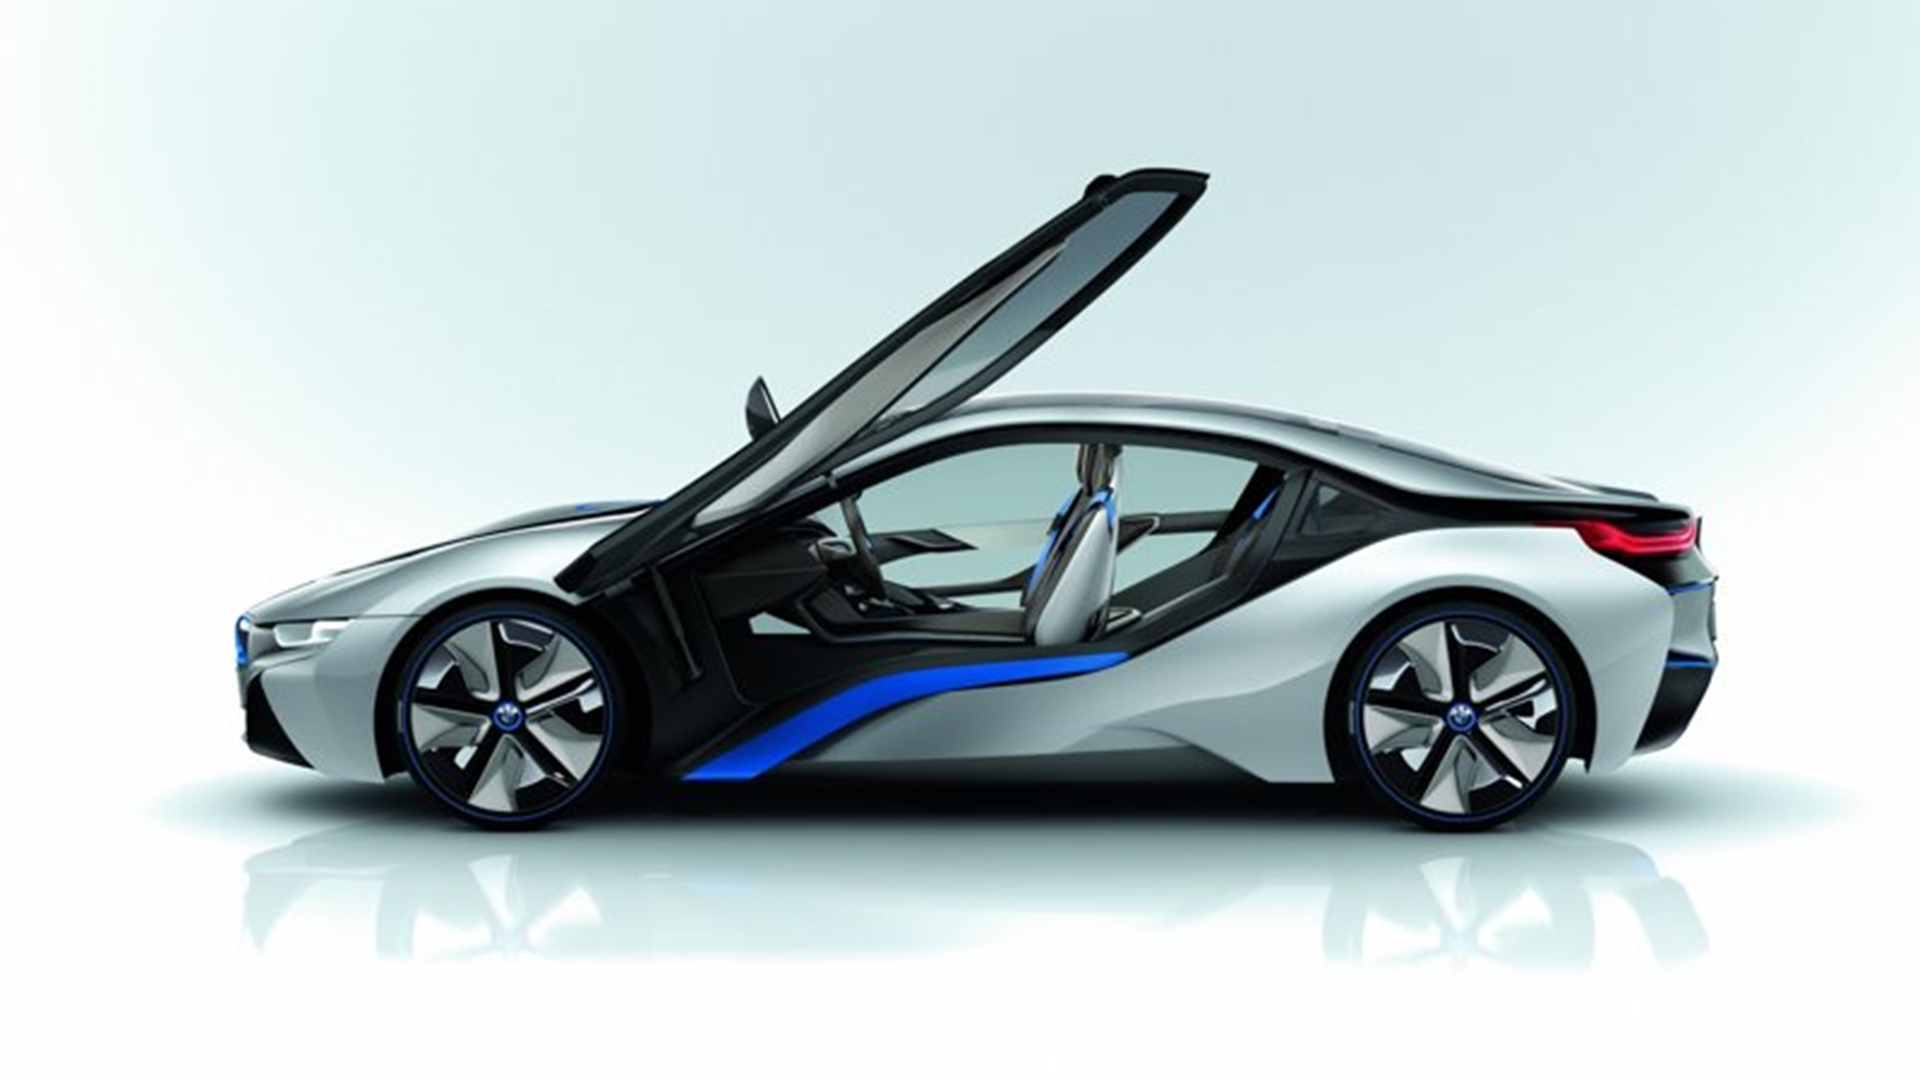 South Africa BMW Concept Car